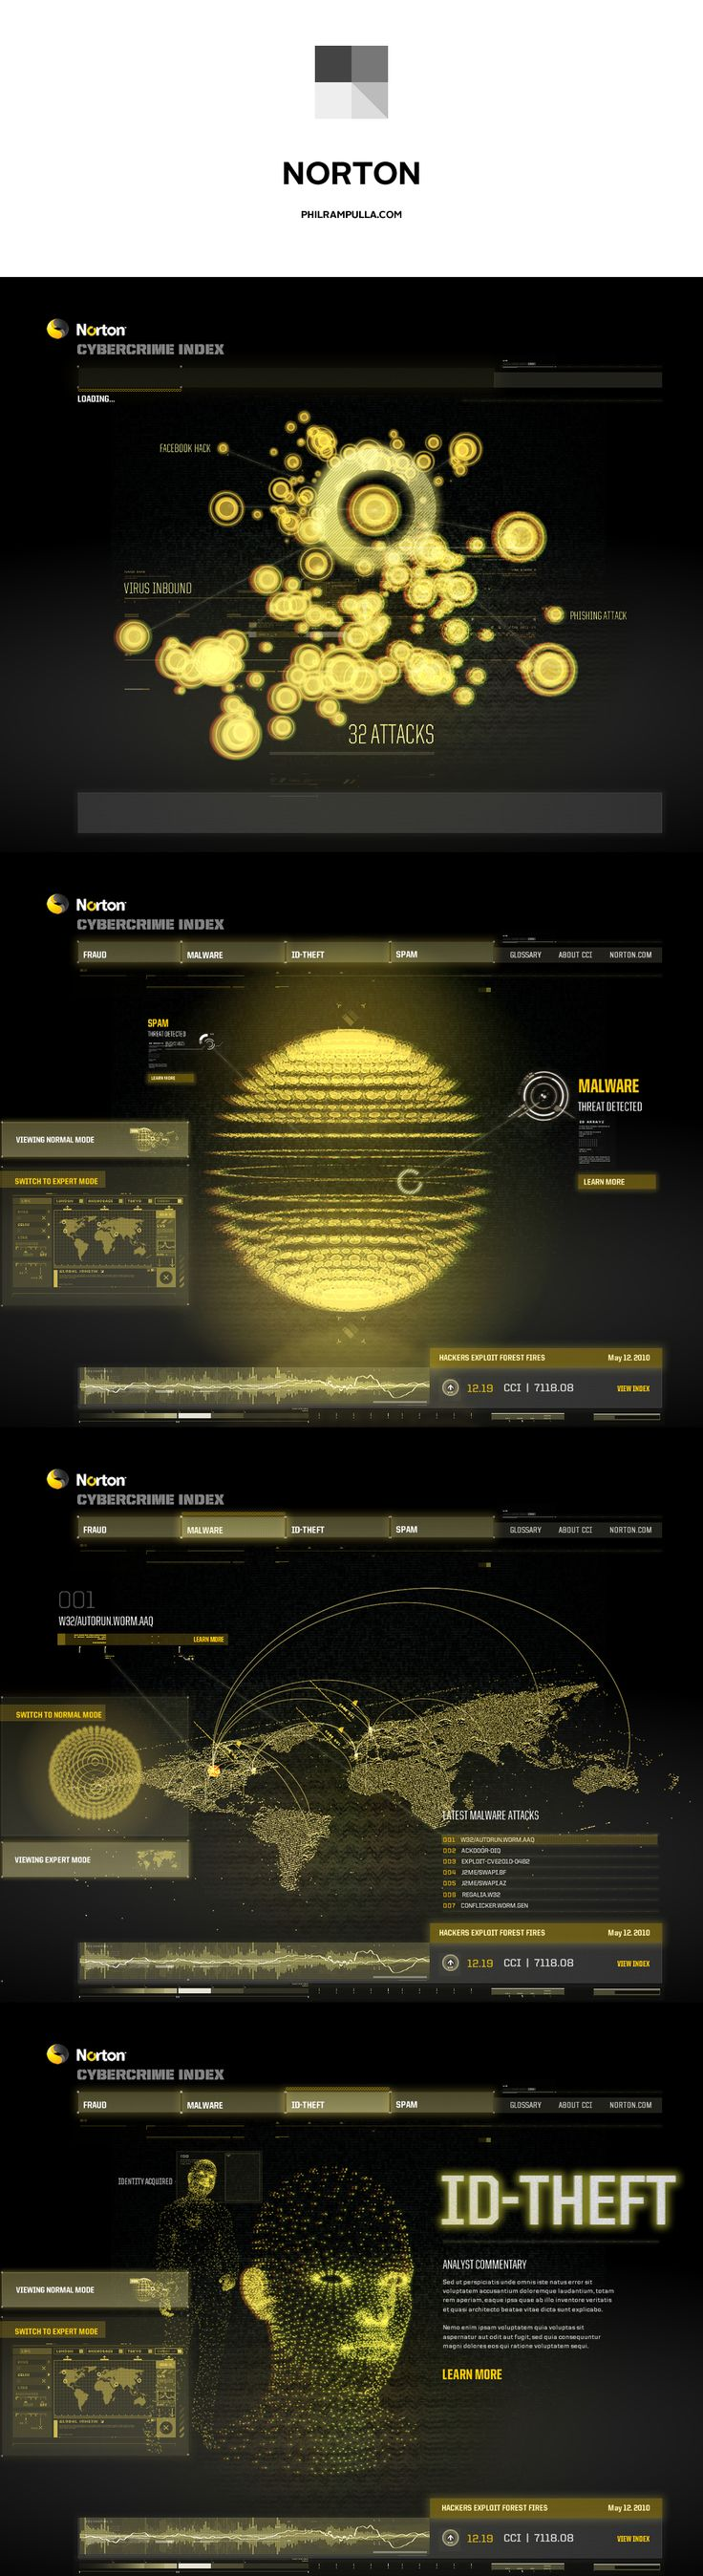 Norton Antivirus - Cybercrime Index Website Visual Direction and UI Design by Phil Rampulla  www.philrampulla.com